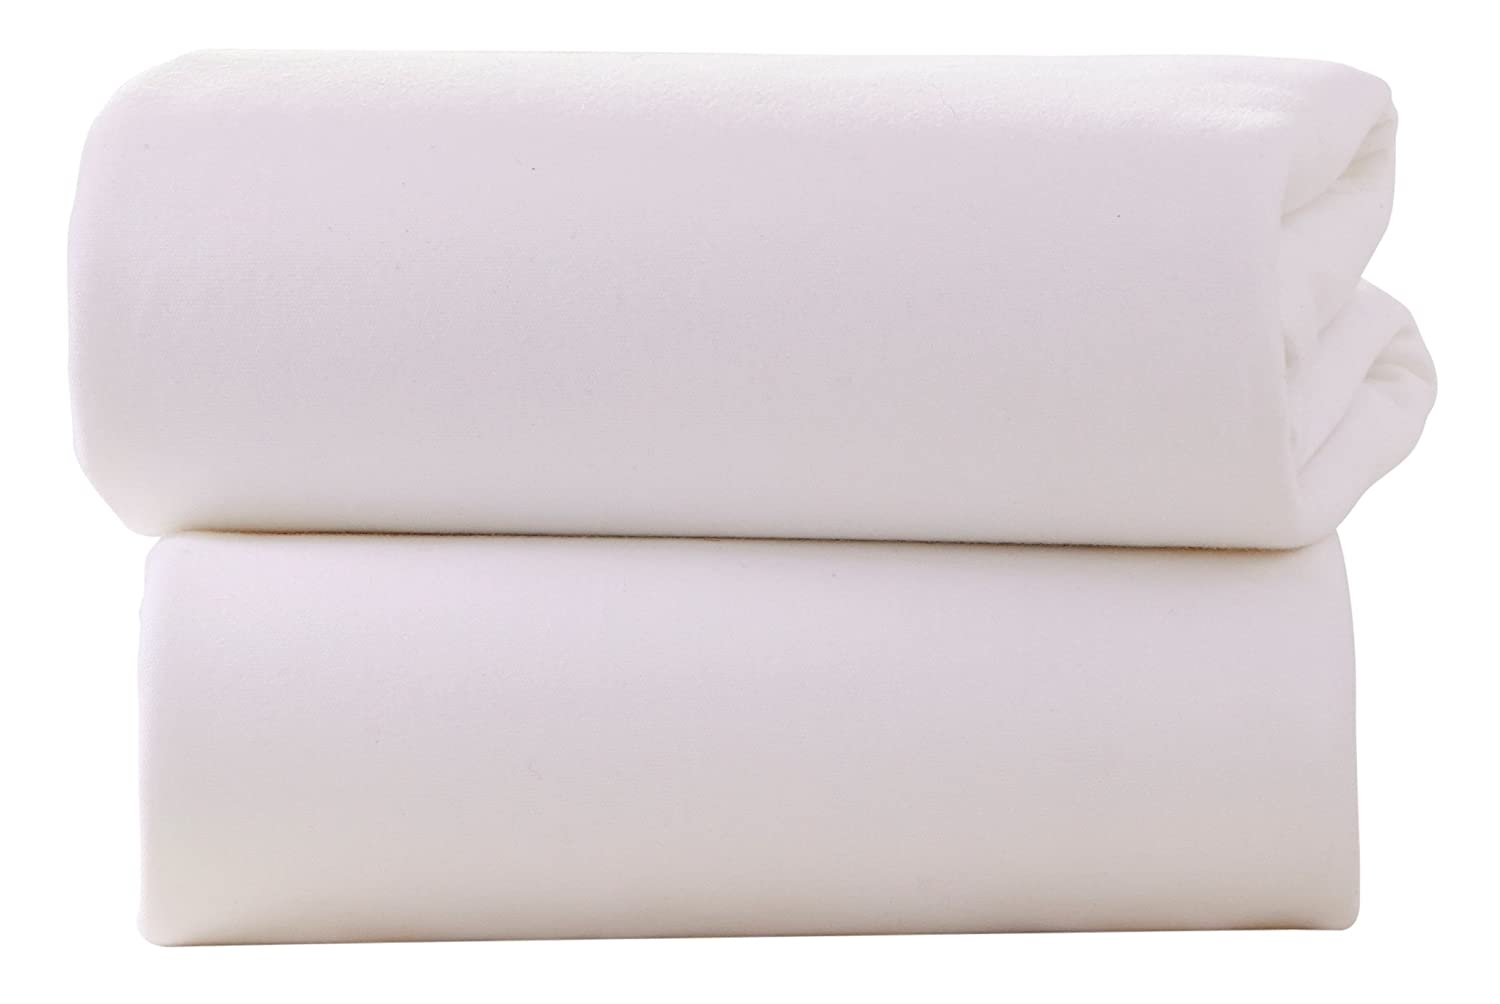 Clair de Lune Crib Cotton Jersey Flat Sheets (Pack of 2, White) CL3024W